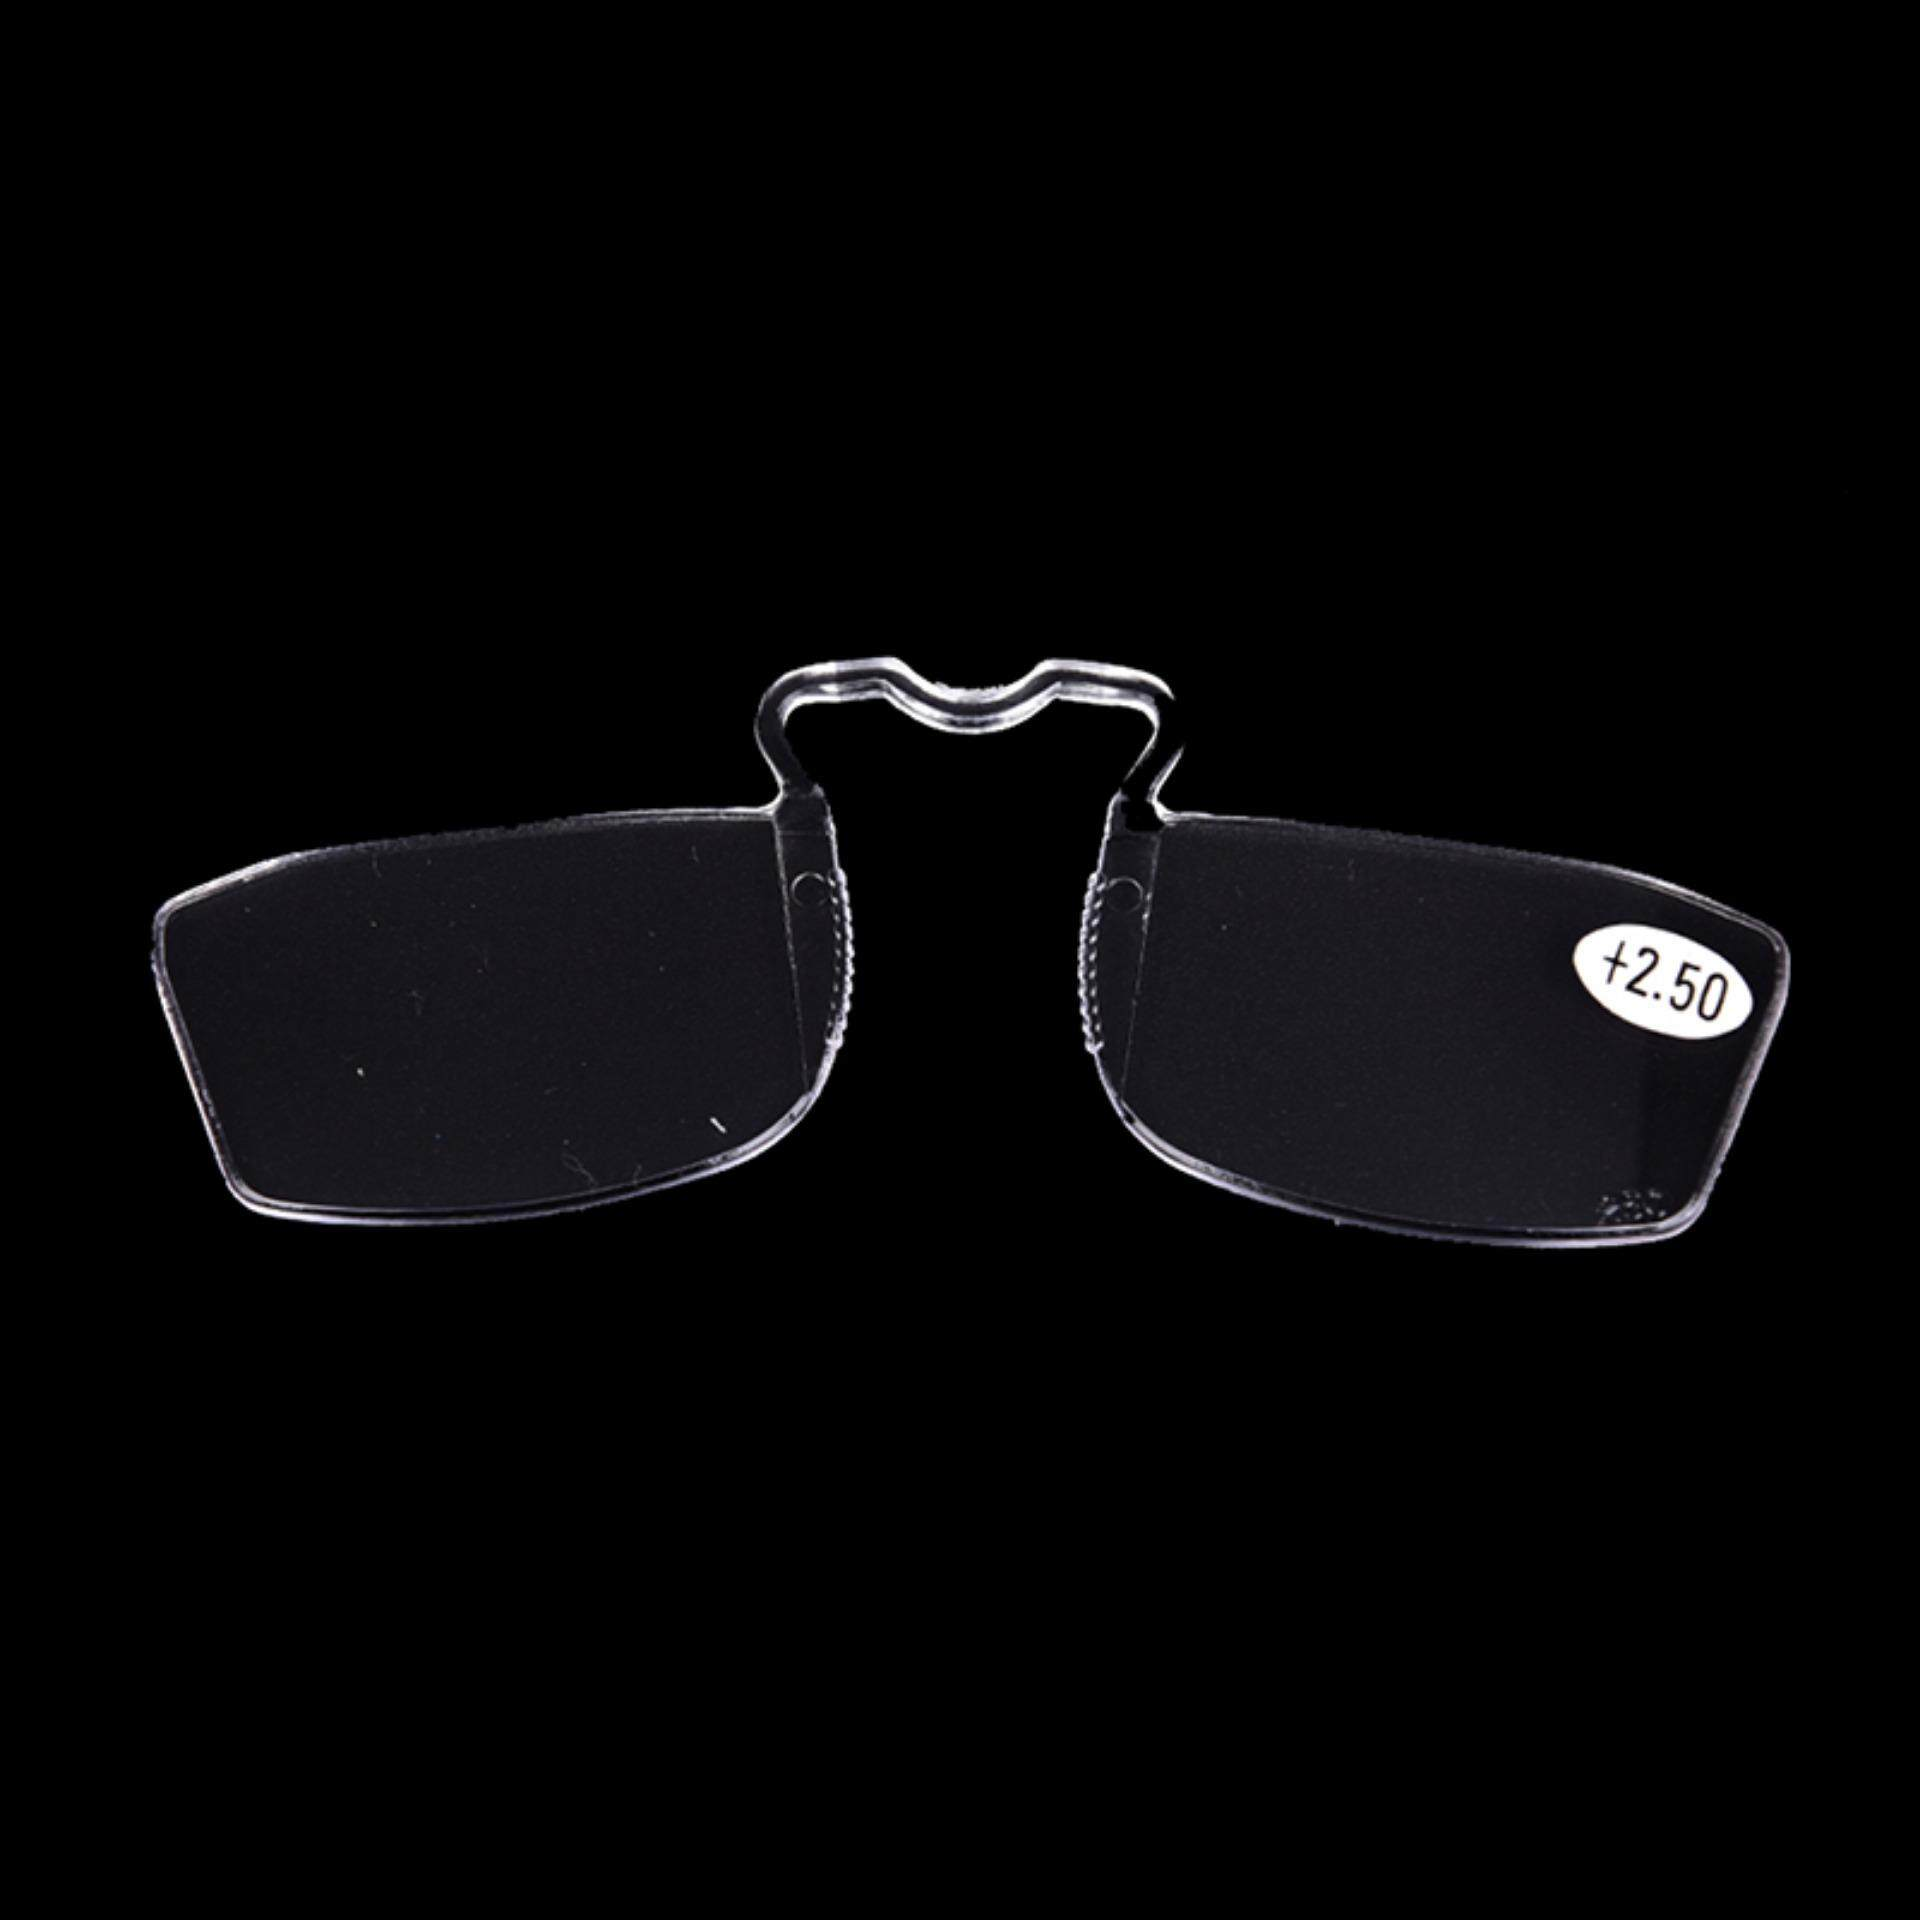 Mini Nose Resting Pocket Reading Glasses Clip Strength 1.0 1.5 2.0 2.5 3.0 Ma Type:n4 By Beauty Wisdom.